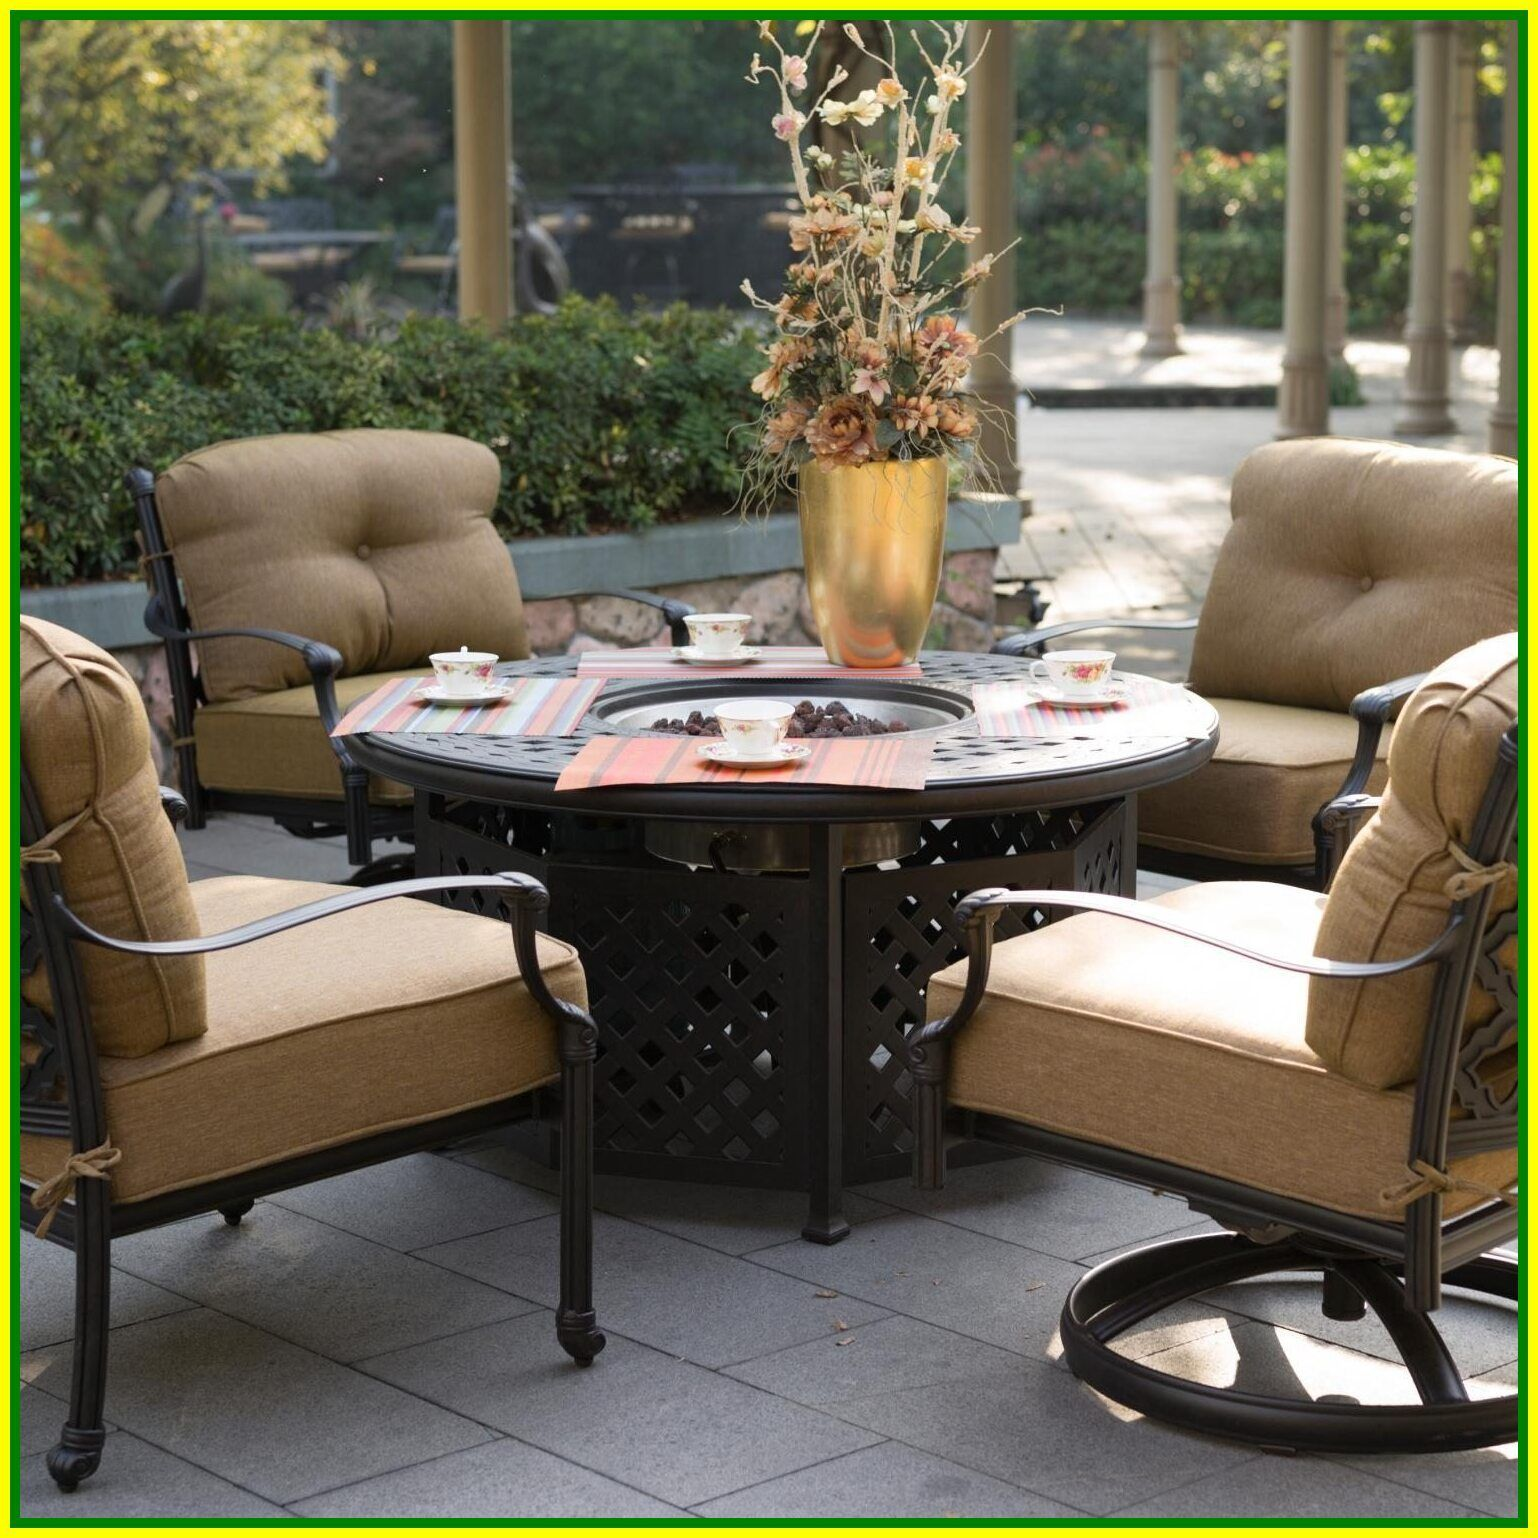 Outdoor Patio Furniture Costco Canada Outdoor Patio Furniture Costco Canada Please Click Link To Fin In 2020 Costco Patio Furniture Outdoor Dining Table Patio Set